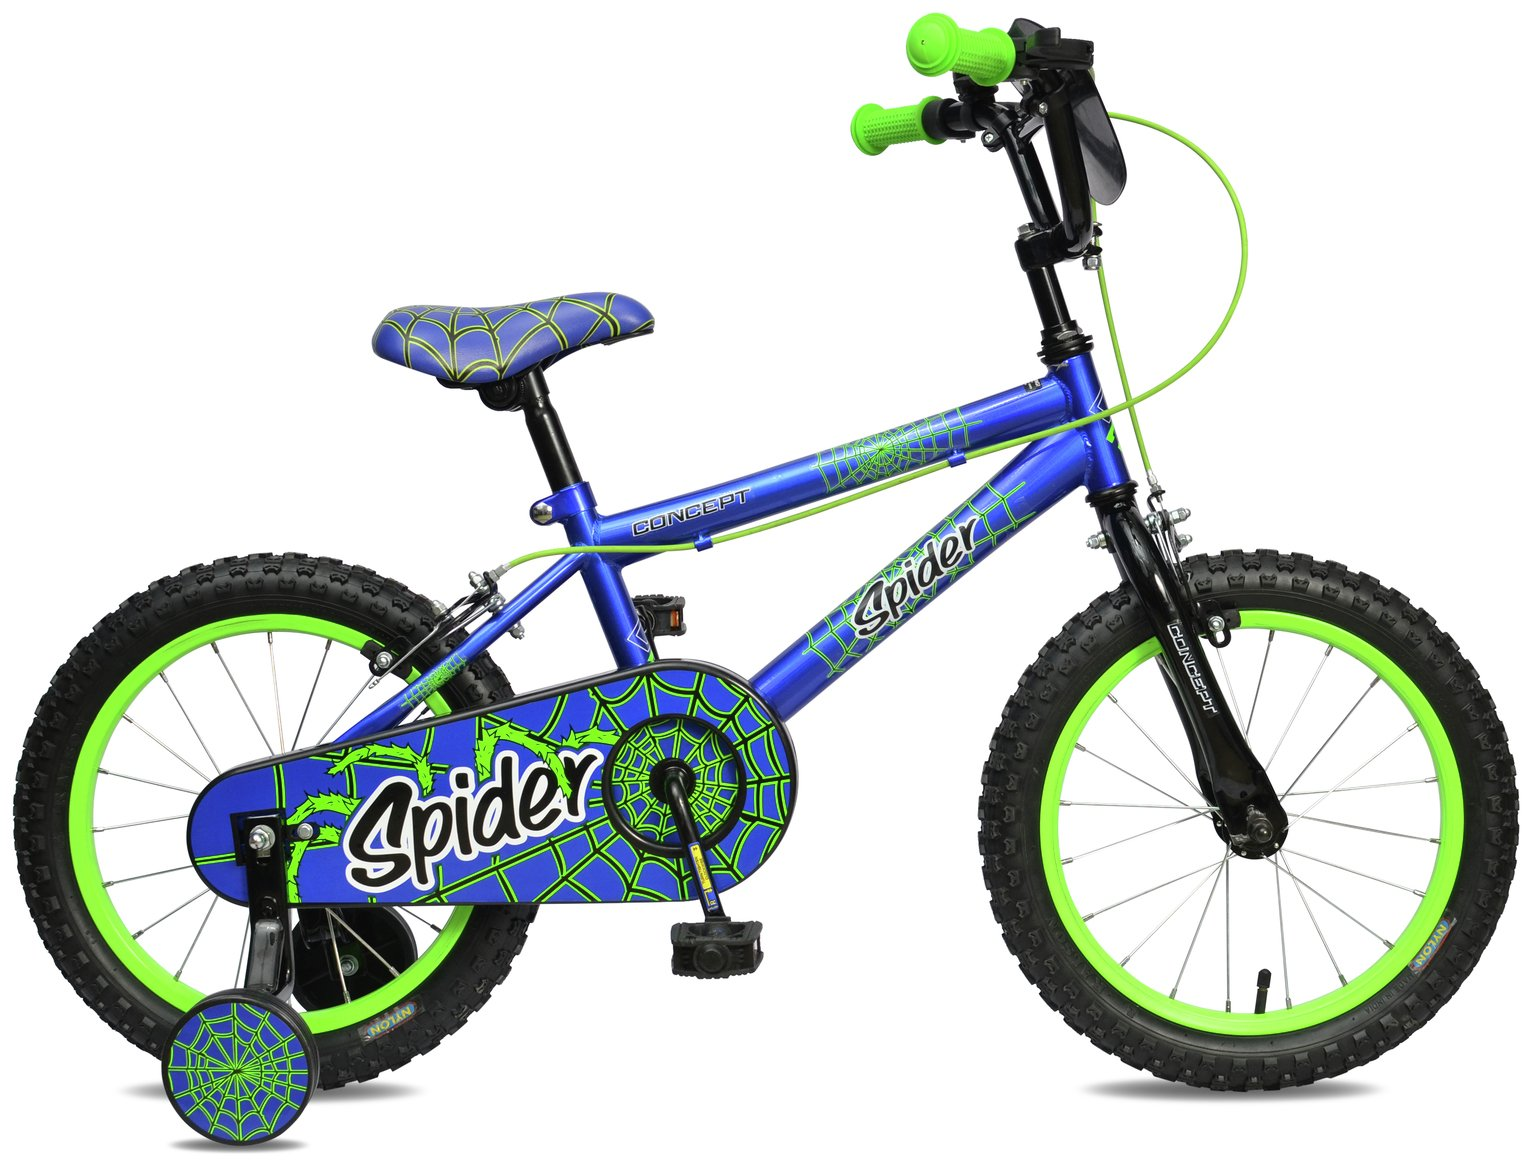 Image of Concept 9 Inch Kids Bike - Spider